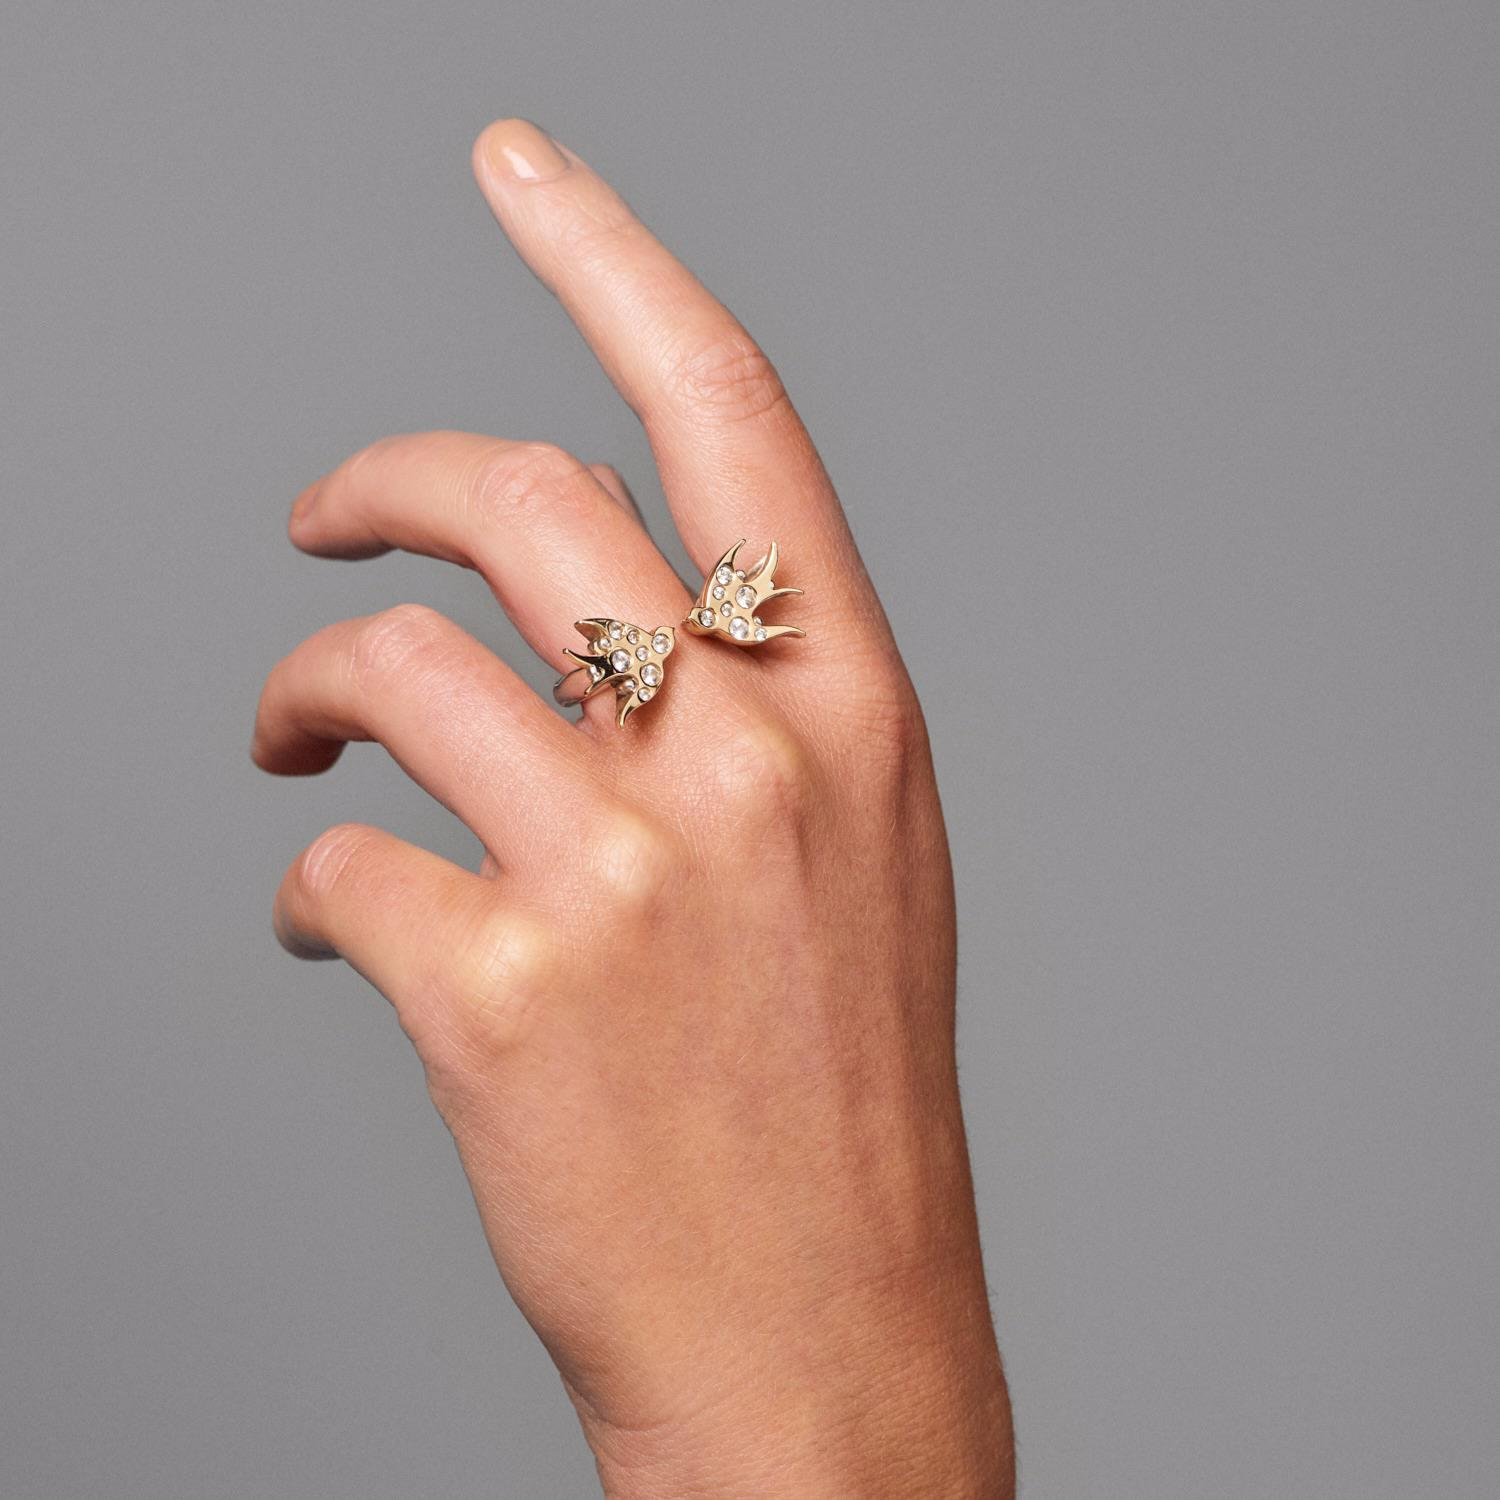 Ella Green Jewellery Swallows Tattoo Ring Yellow Gold Silver With White Sapphires in Silver / White / Gold (Metallic)